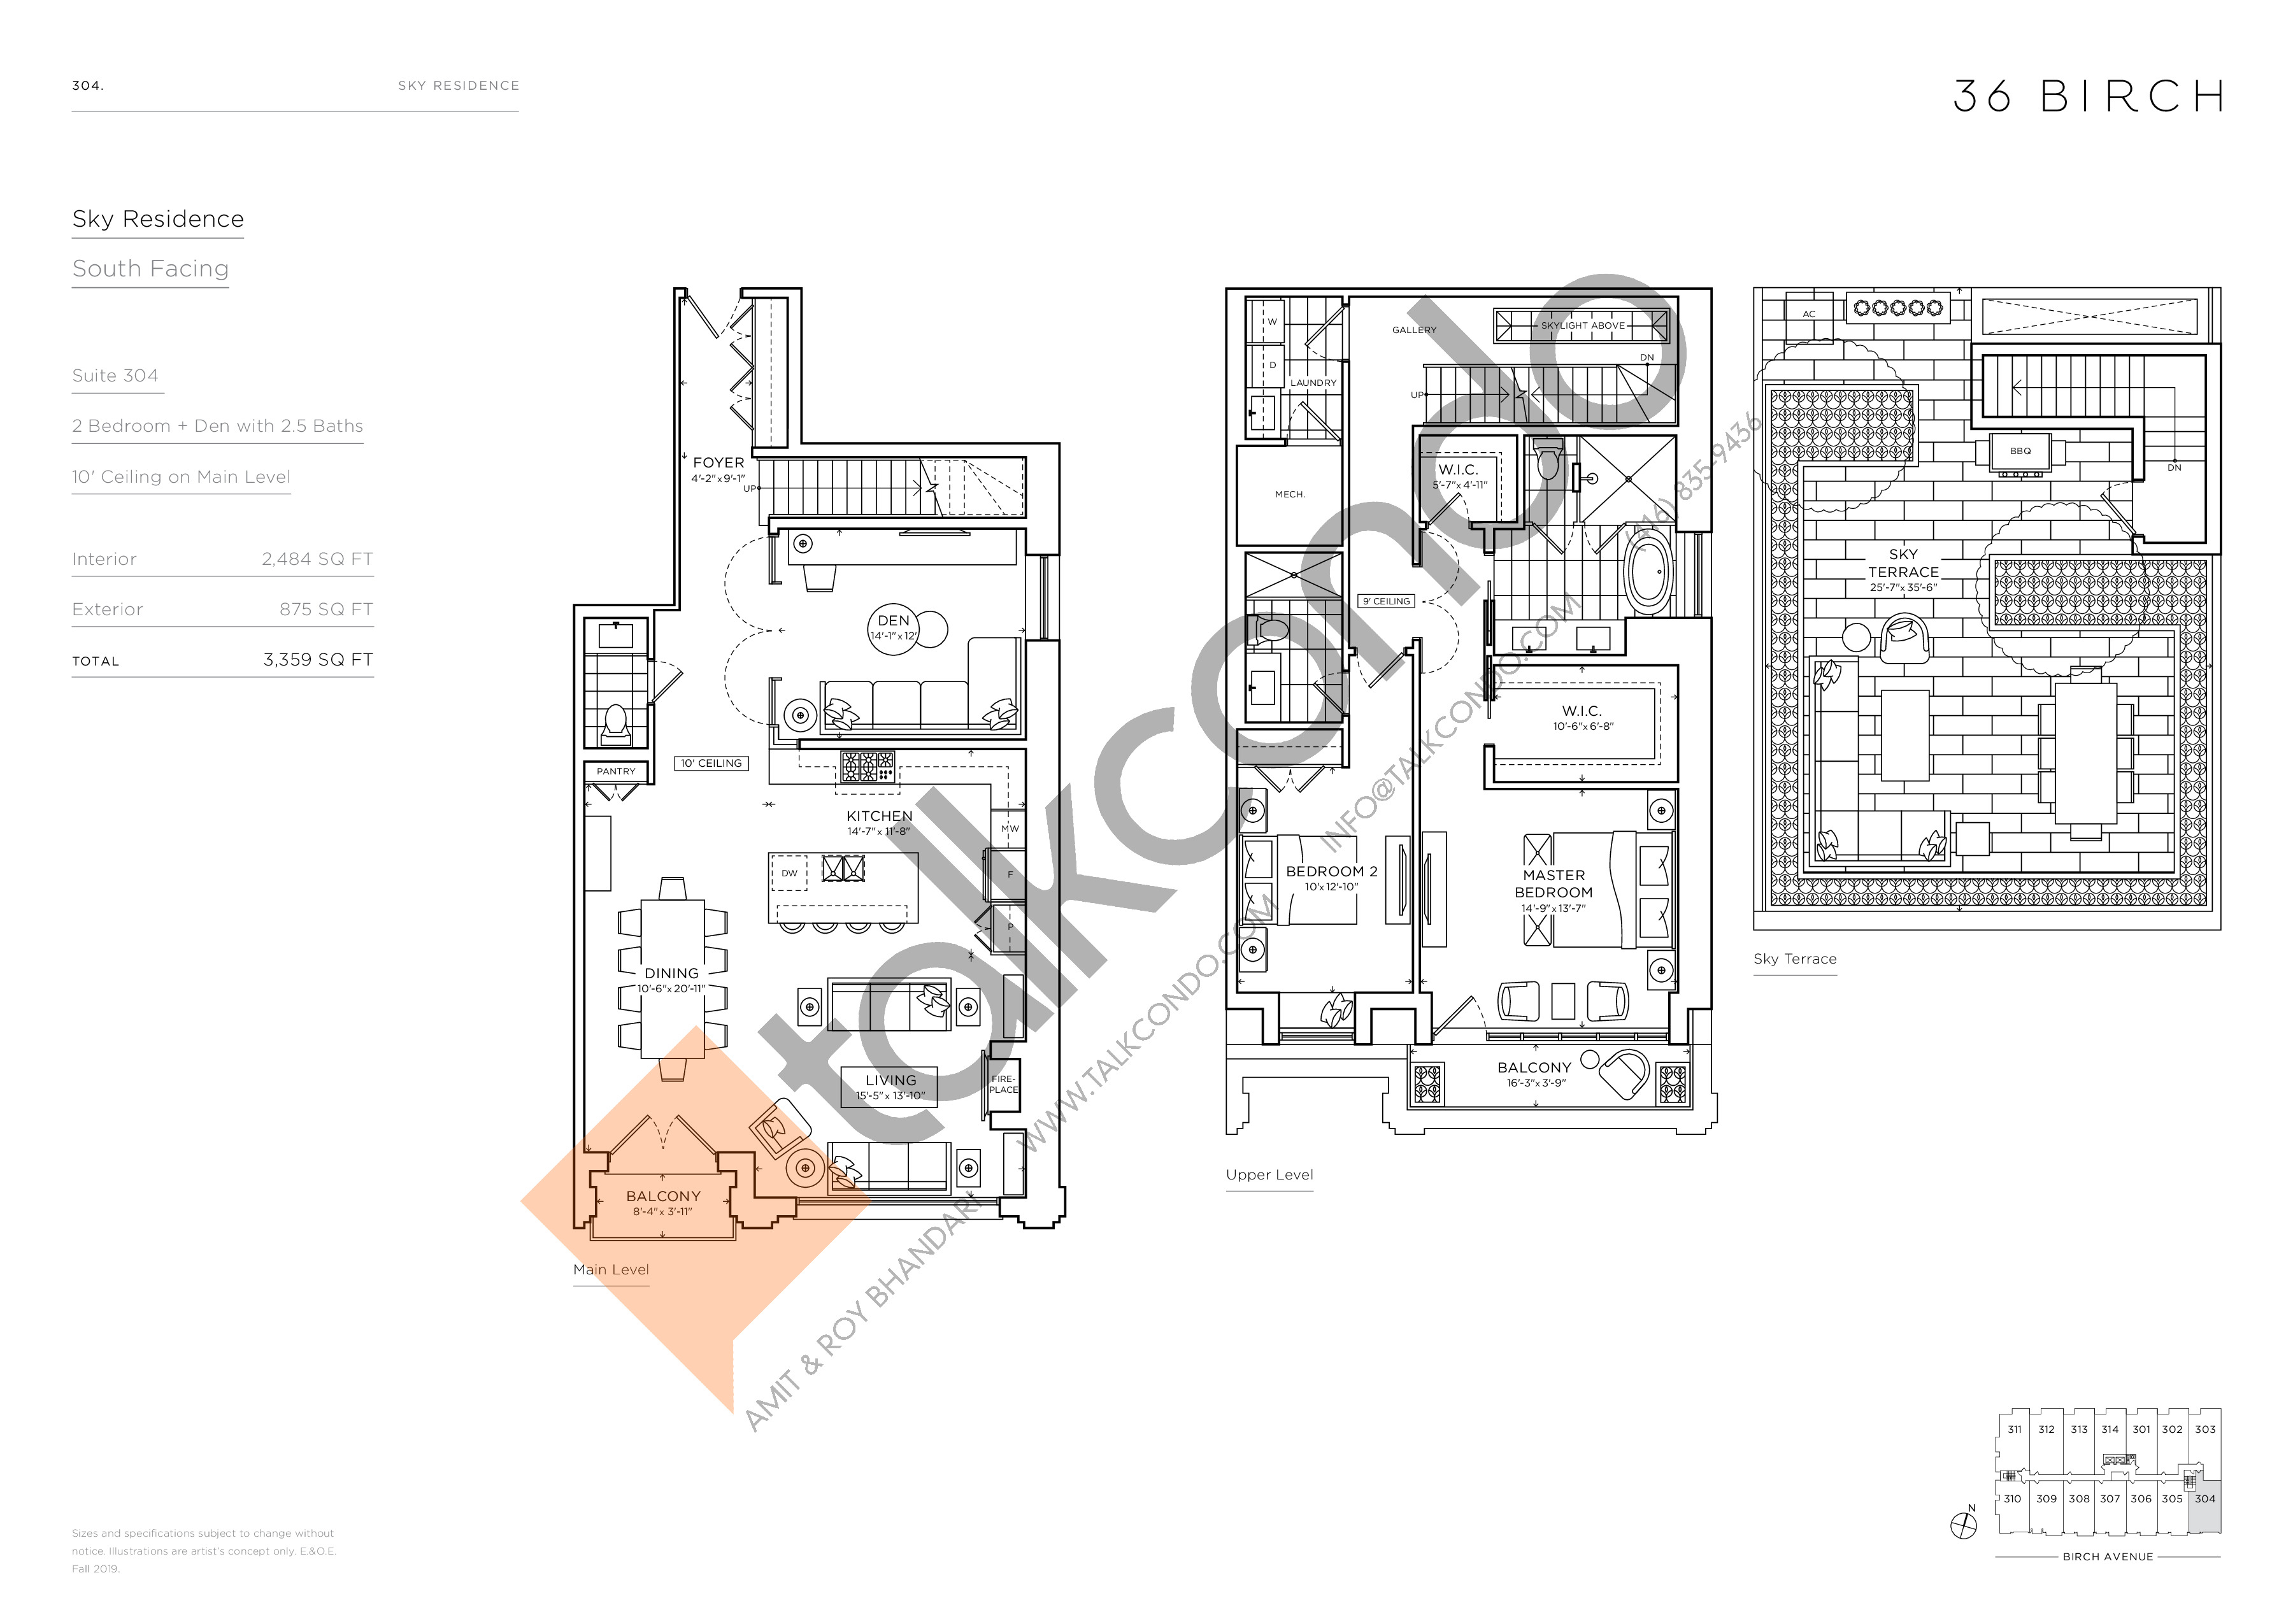 304 - Sky Residence Floor Plan at 36 Birch Condos - 2484 sq.ft